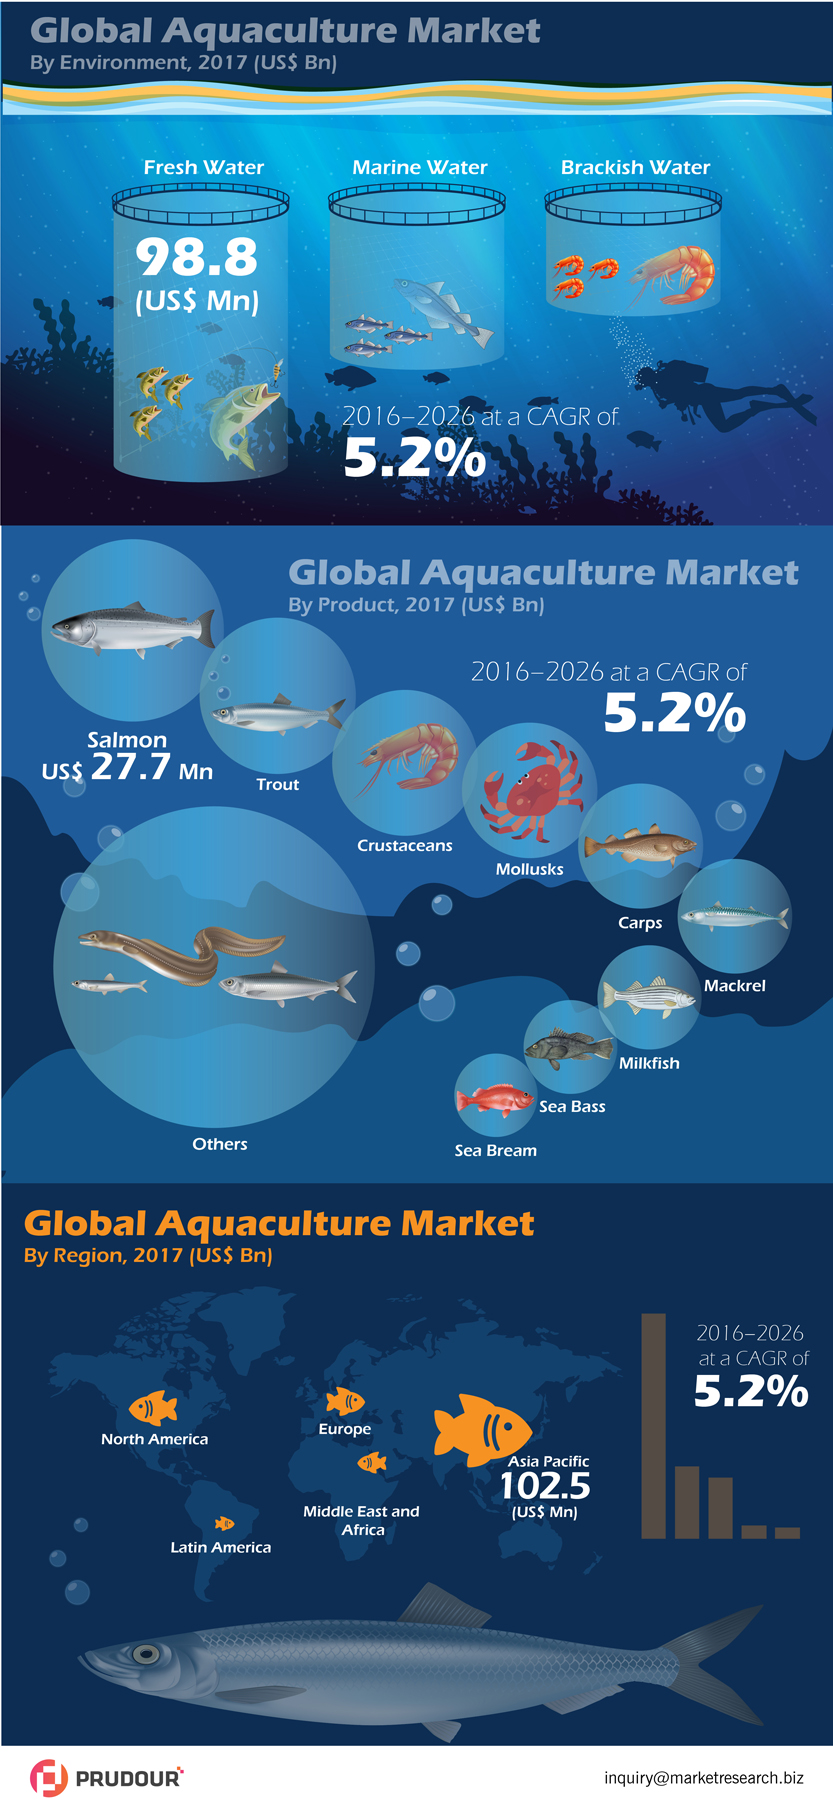 Five Year (2017-2021) Global Aquaculture Market Revenue is projected to be US$ 961.8 Bn in 2021